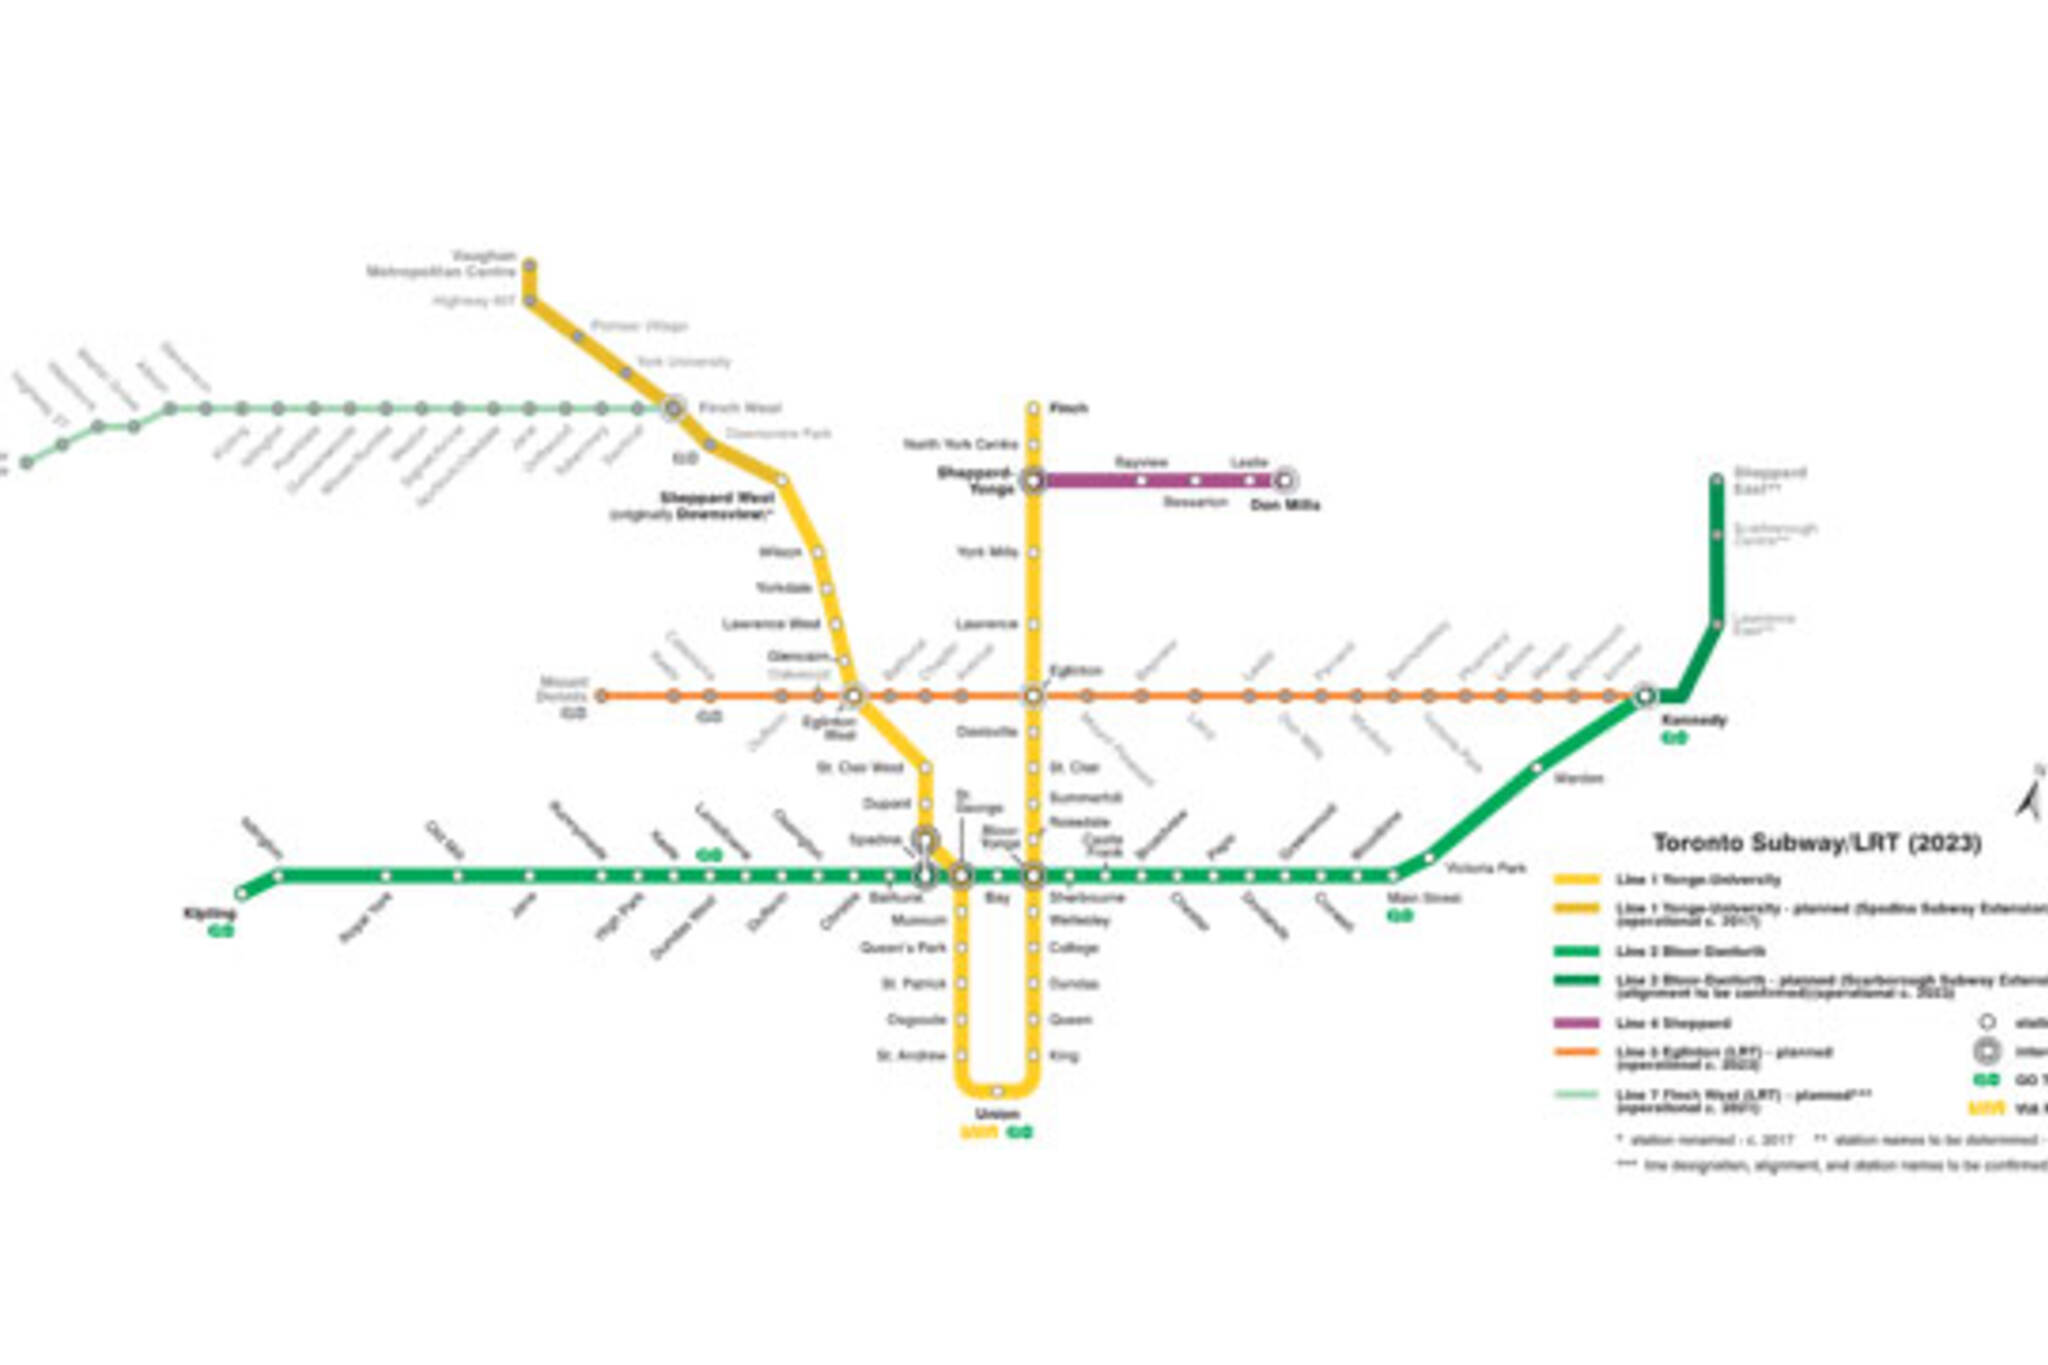 Ttc Subway Map 2025.This Is What The Ttc Map Will Look Like In 2025